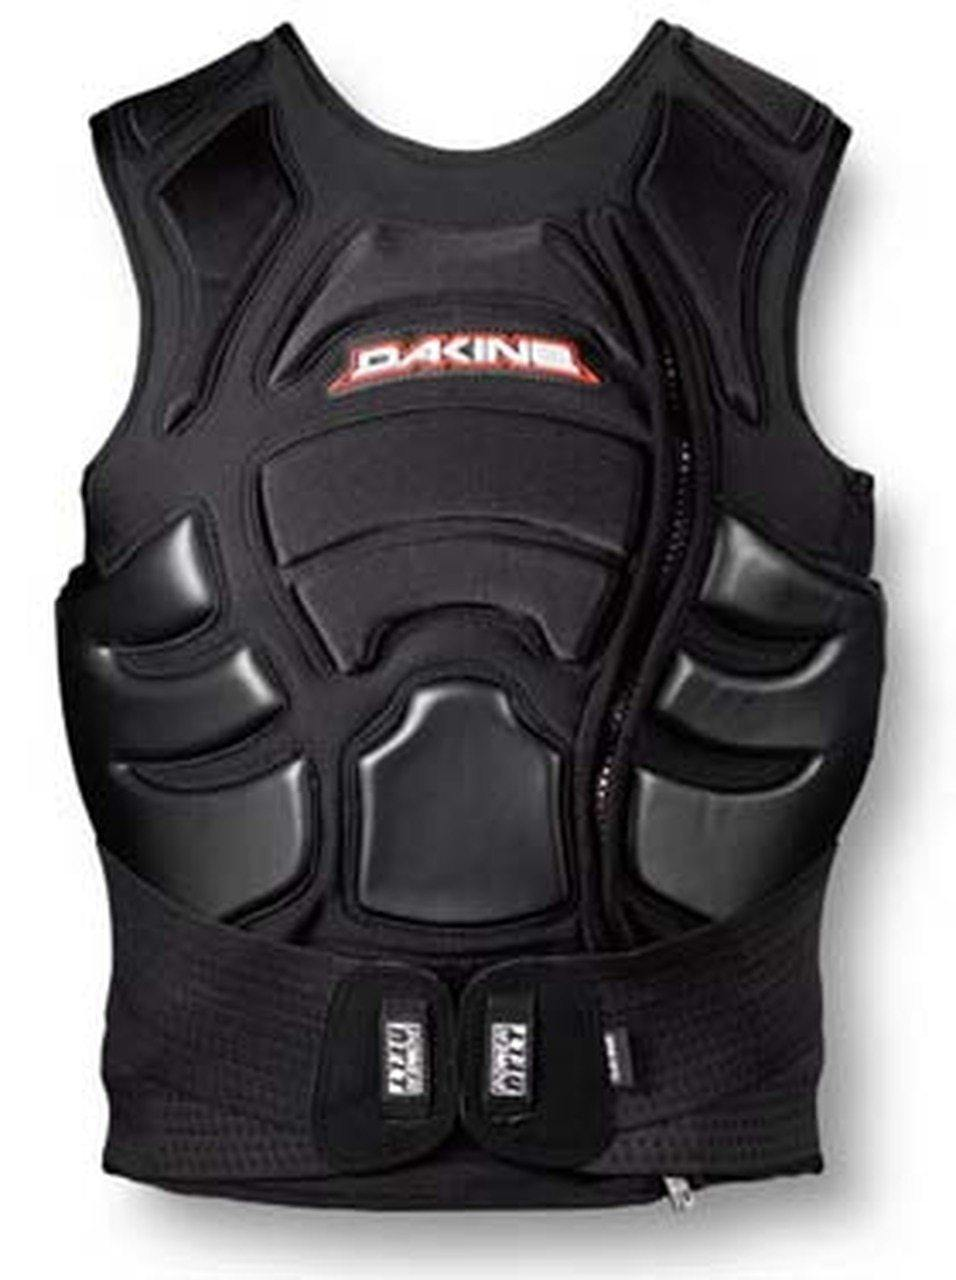 Dakine Matrix Vest - Small - Urban Surf